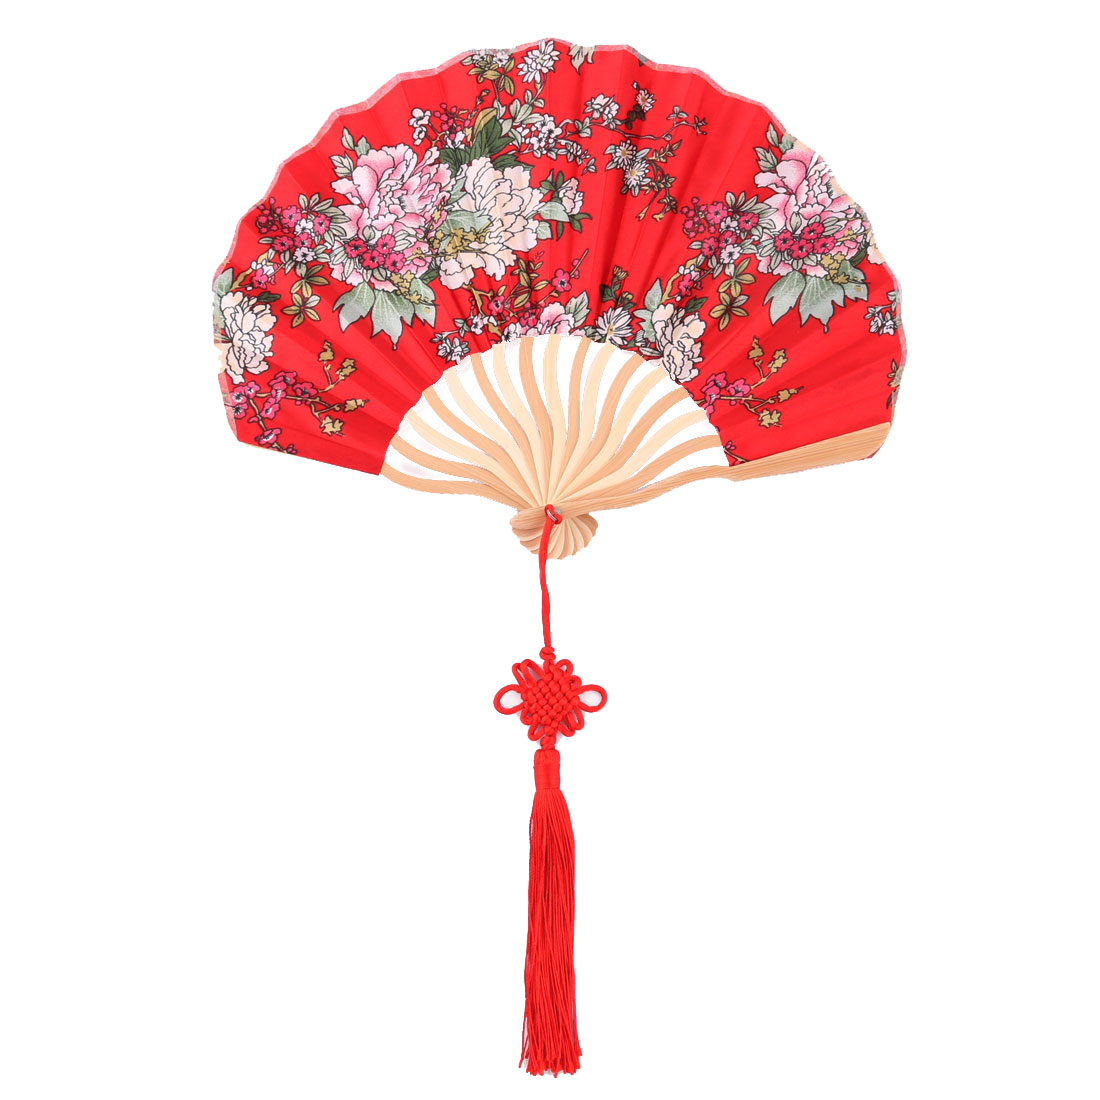 Bamboo Frame Chinese Knot Tassel Pendant Decor Dancing Folding Hand Fan Red